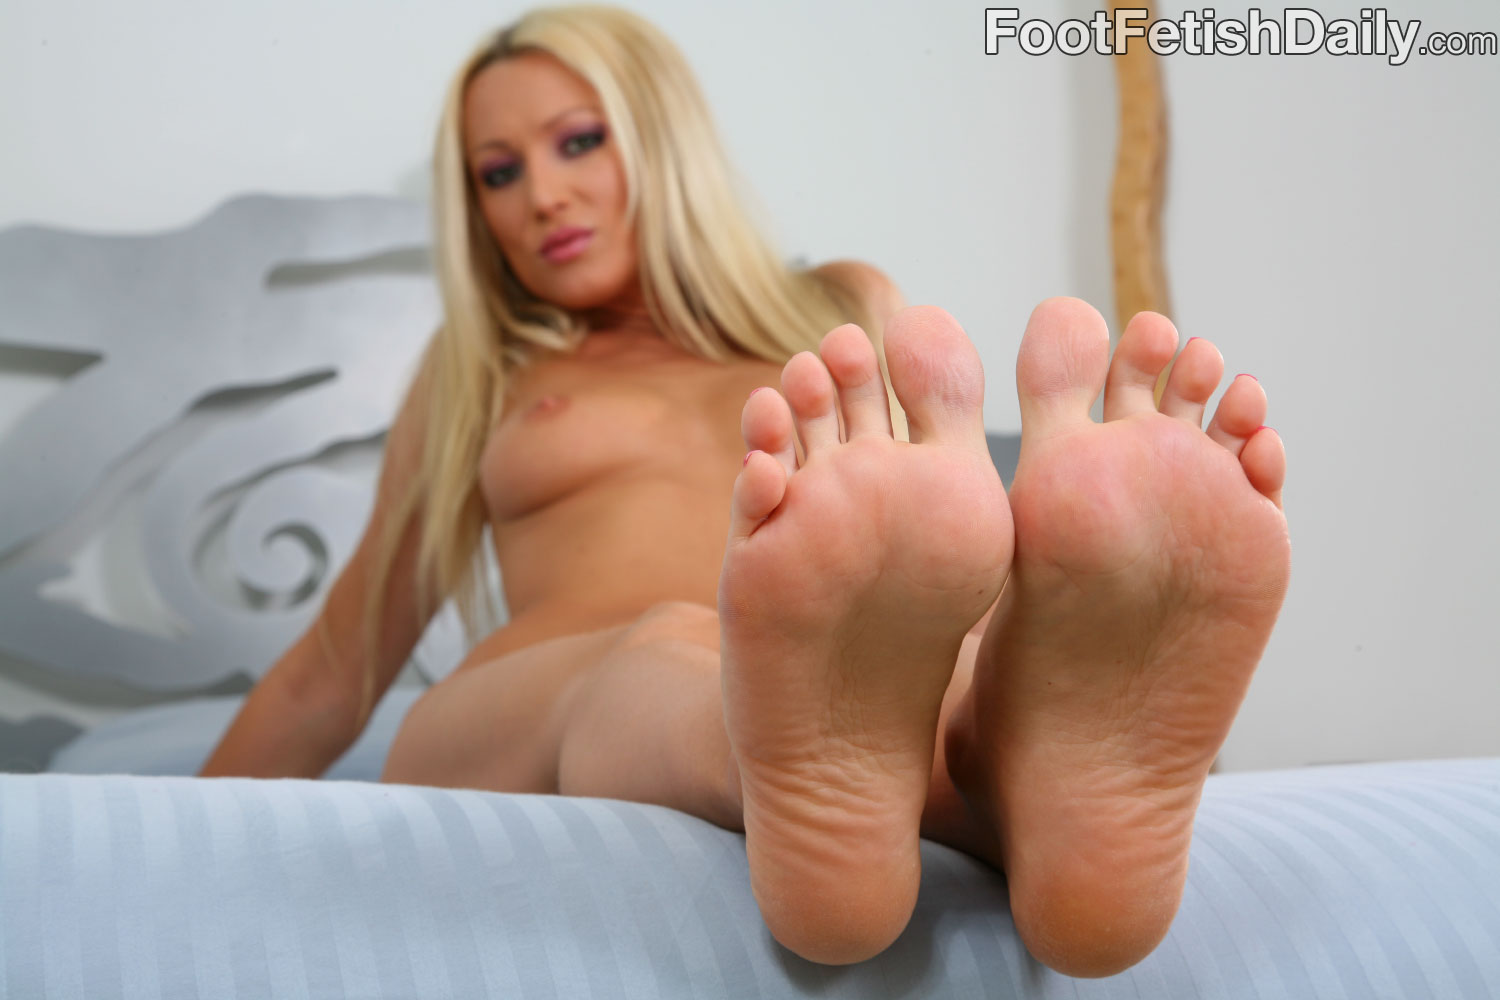 feet-fetish-nude-girls-foot-mix-vol5-11